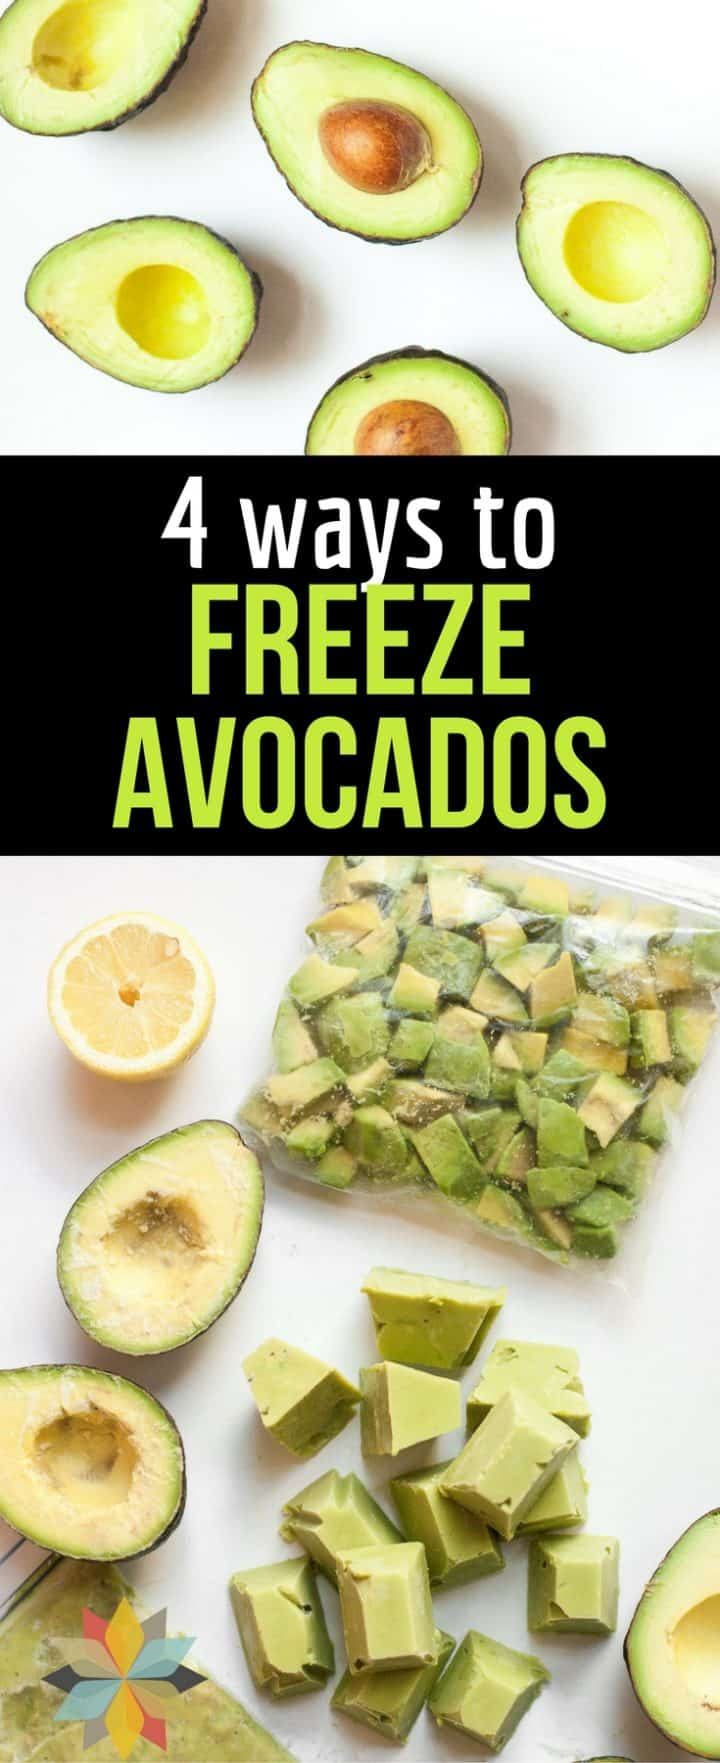 avocado halves, cubed avocado puree, guacamole, and lemon half for freezing avocados